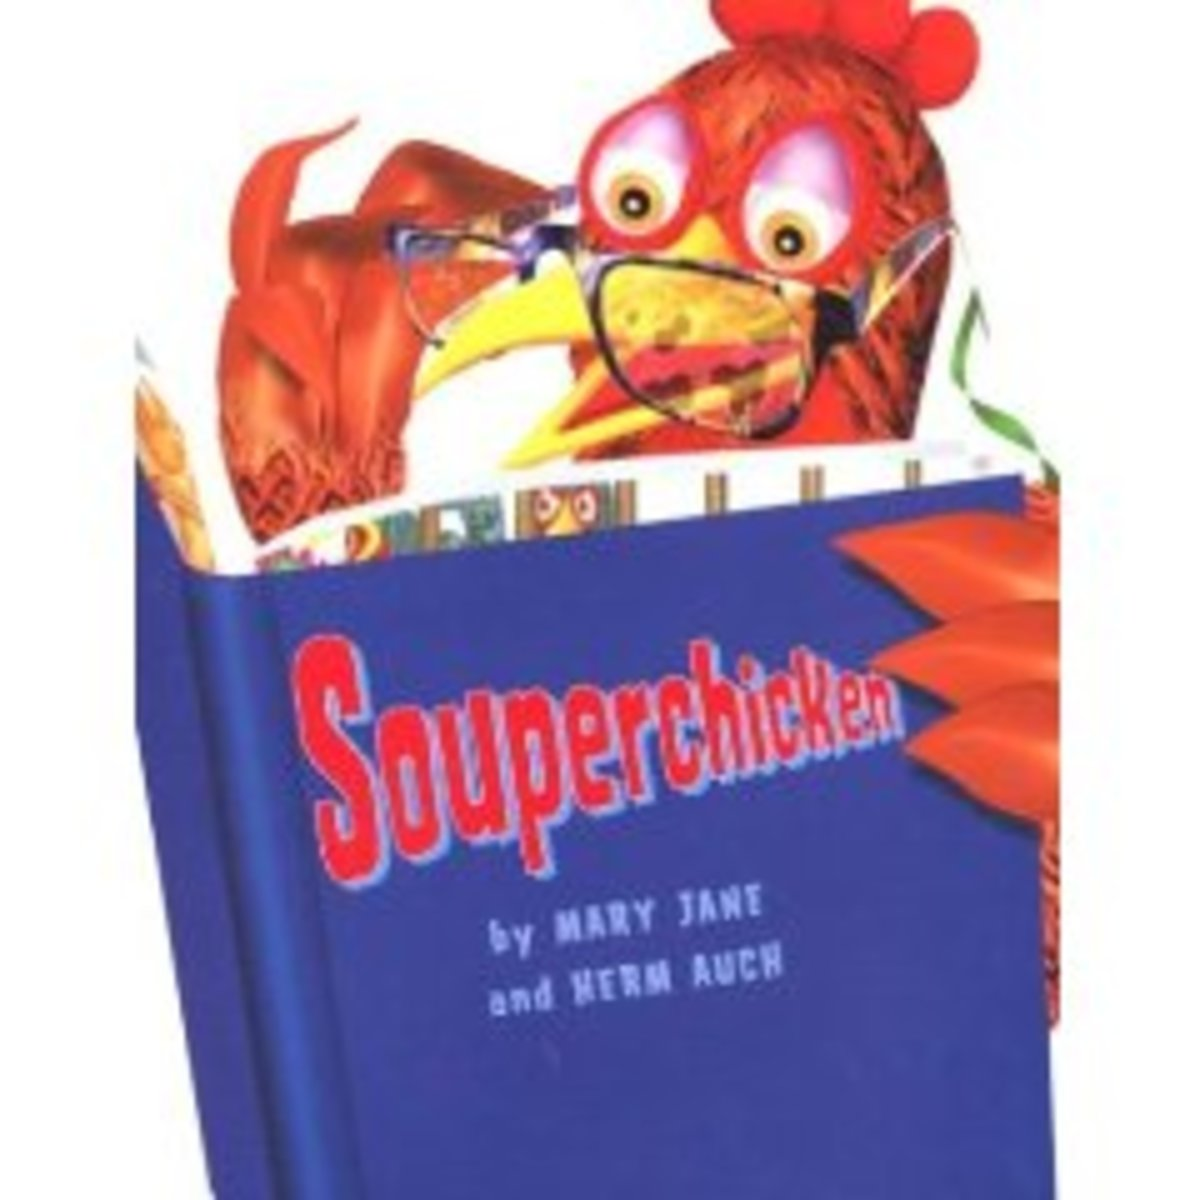 Souperchicken by Mary Jane and Herm Auch: A Children's Book that Promotes Reading